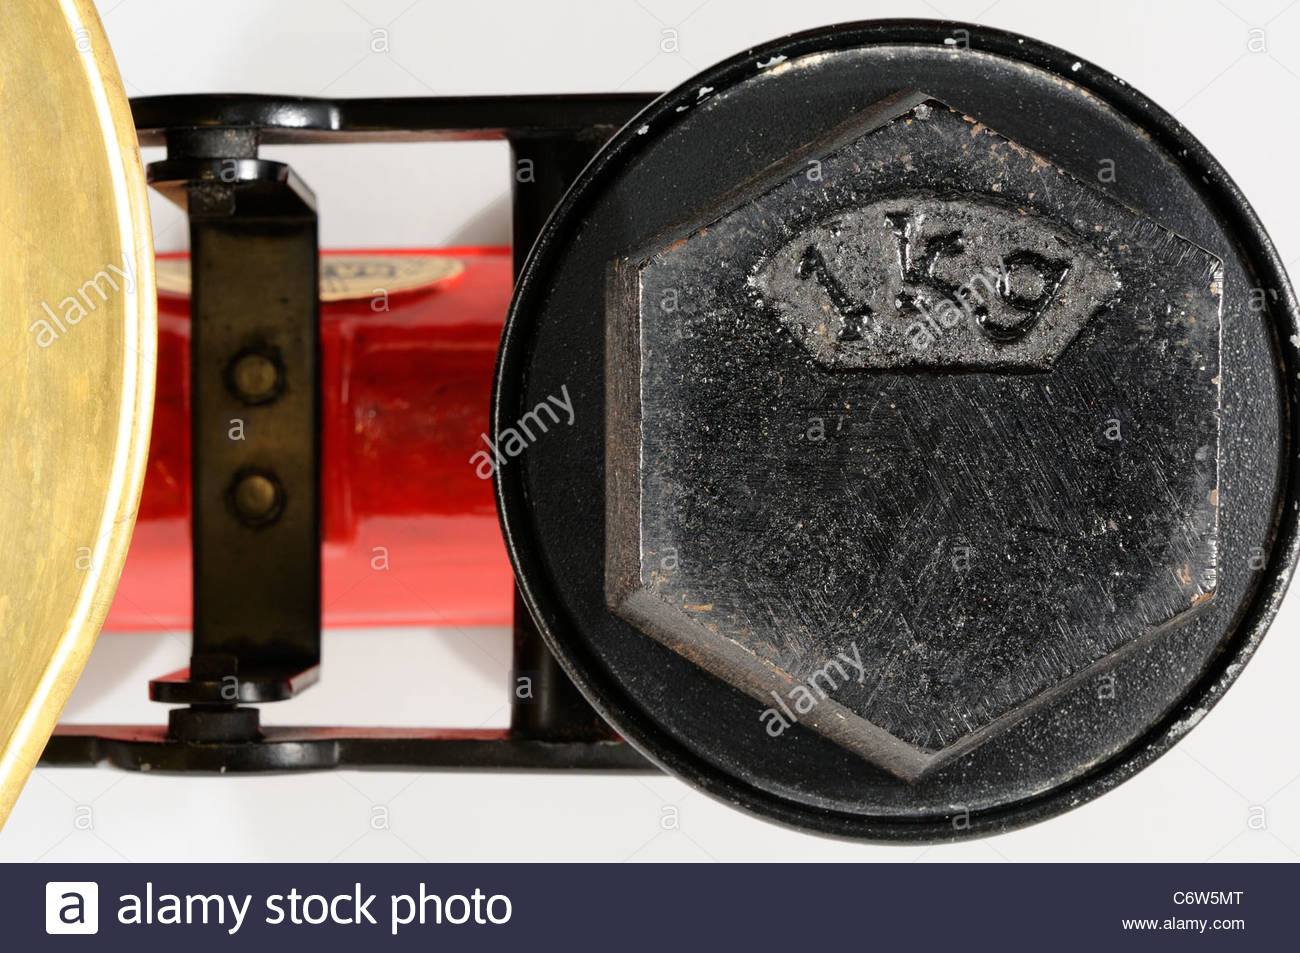 One kg Weight on kitchen scales, England - Stock Image